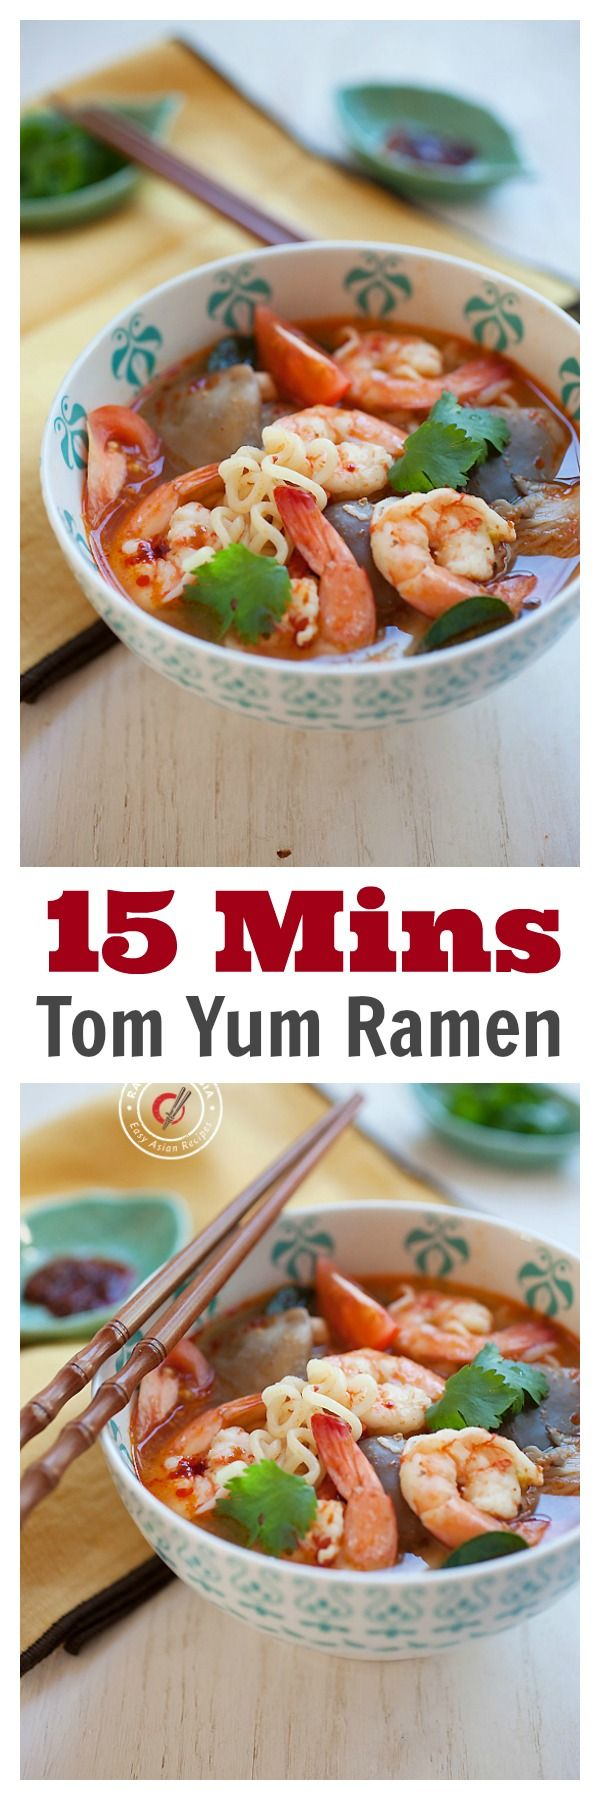 15 mins Tom Yum Ramen -  not instant ramen, but made from scratch, super EASY Thai Tom Yum Shrimp Ramen. So GOOD | rasamalaysia.com